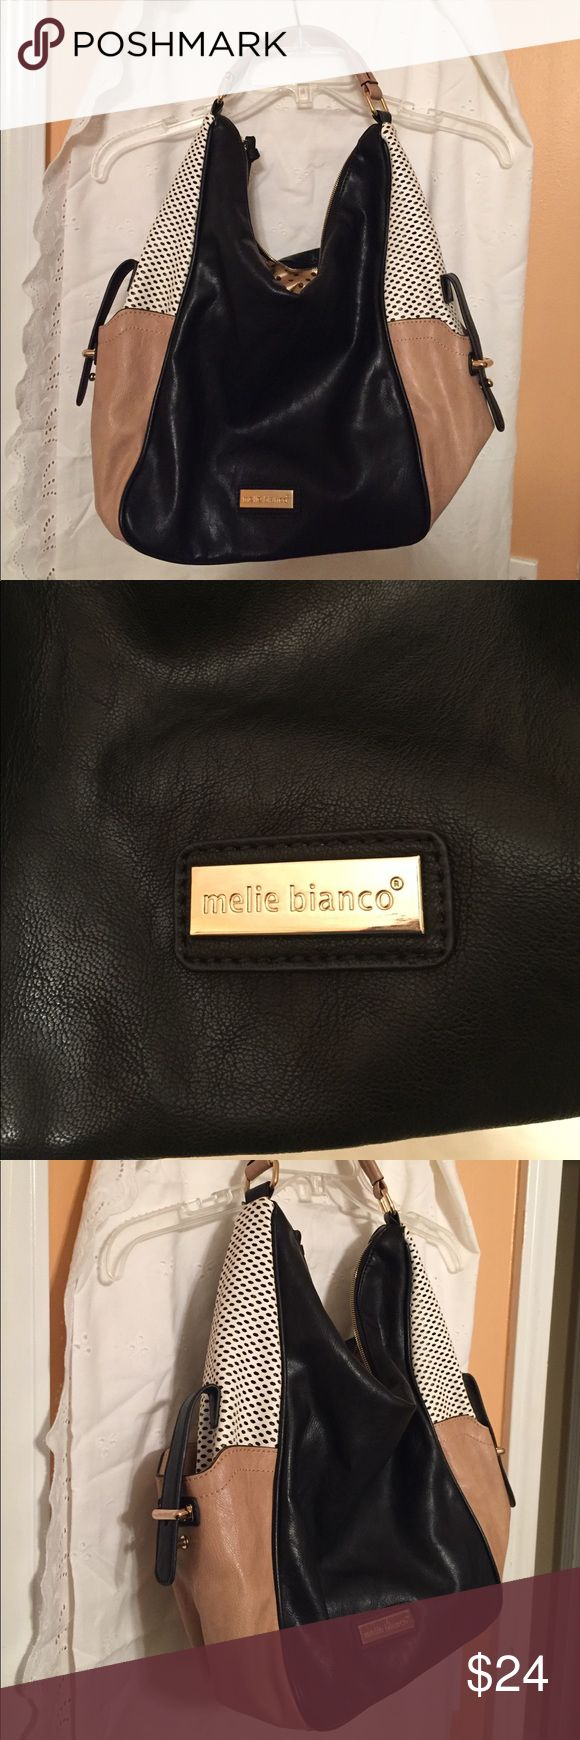 Melie Bianco Handbag Black khaki with white perforations shoulder bag. Detachable white perforated purse. Brown polka dot lining. Melie Bianco Bags Shoulder Bags